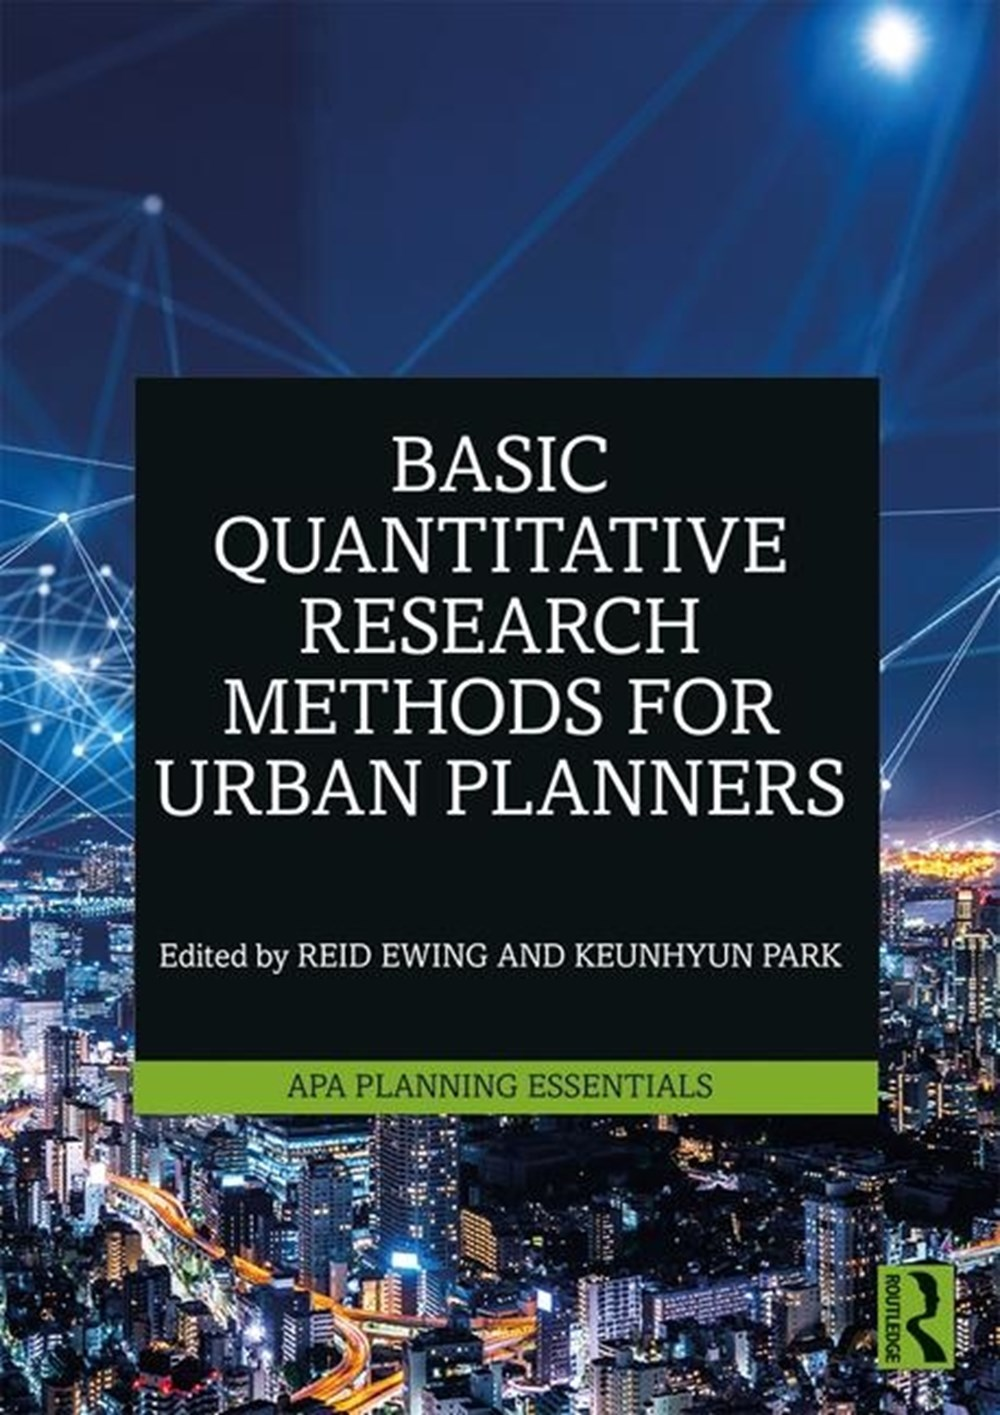 Basic Quantitative Research Methods for Urban Planners